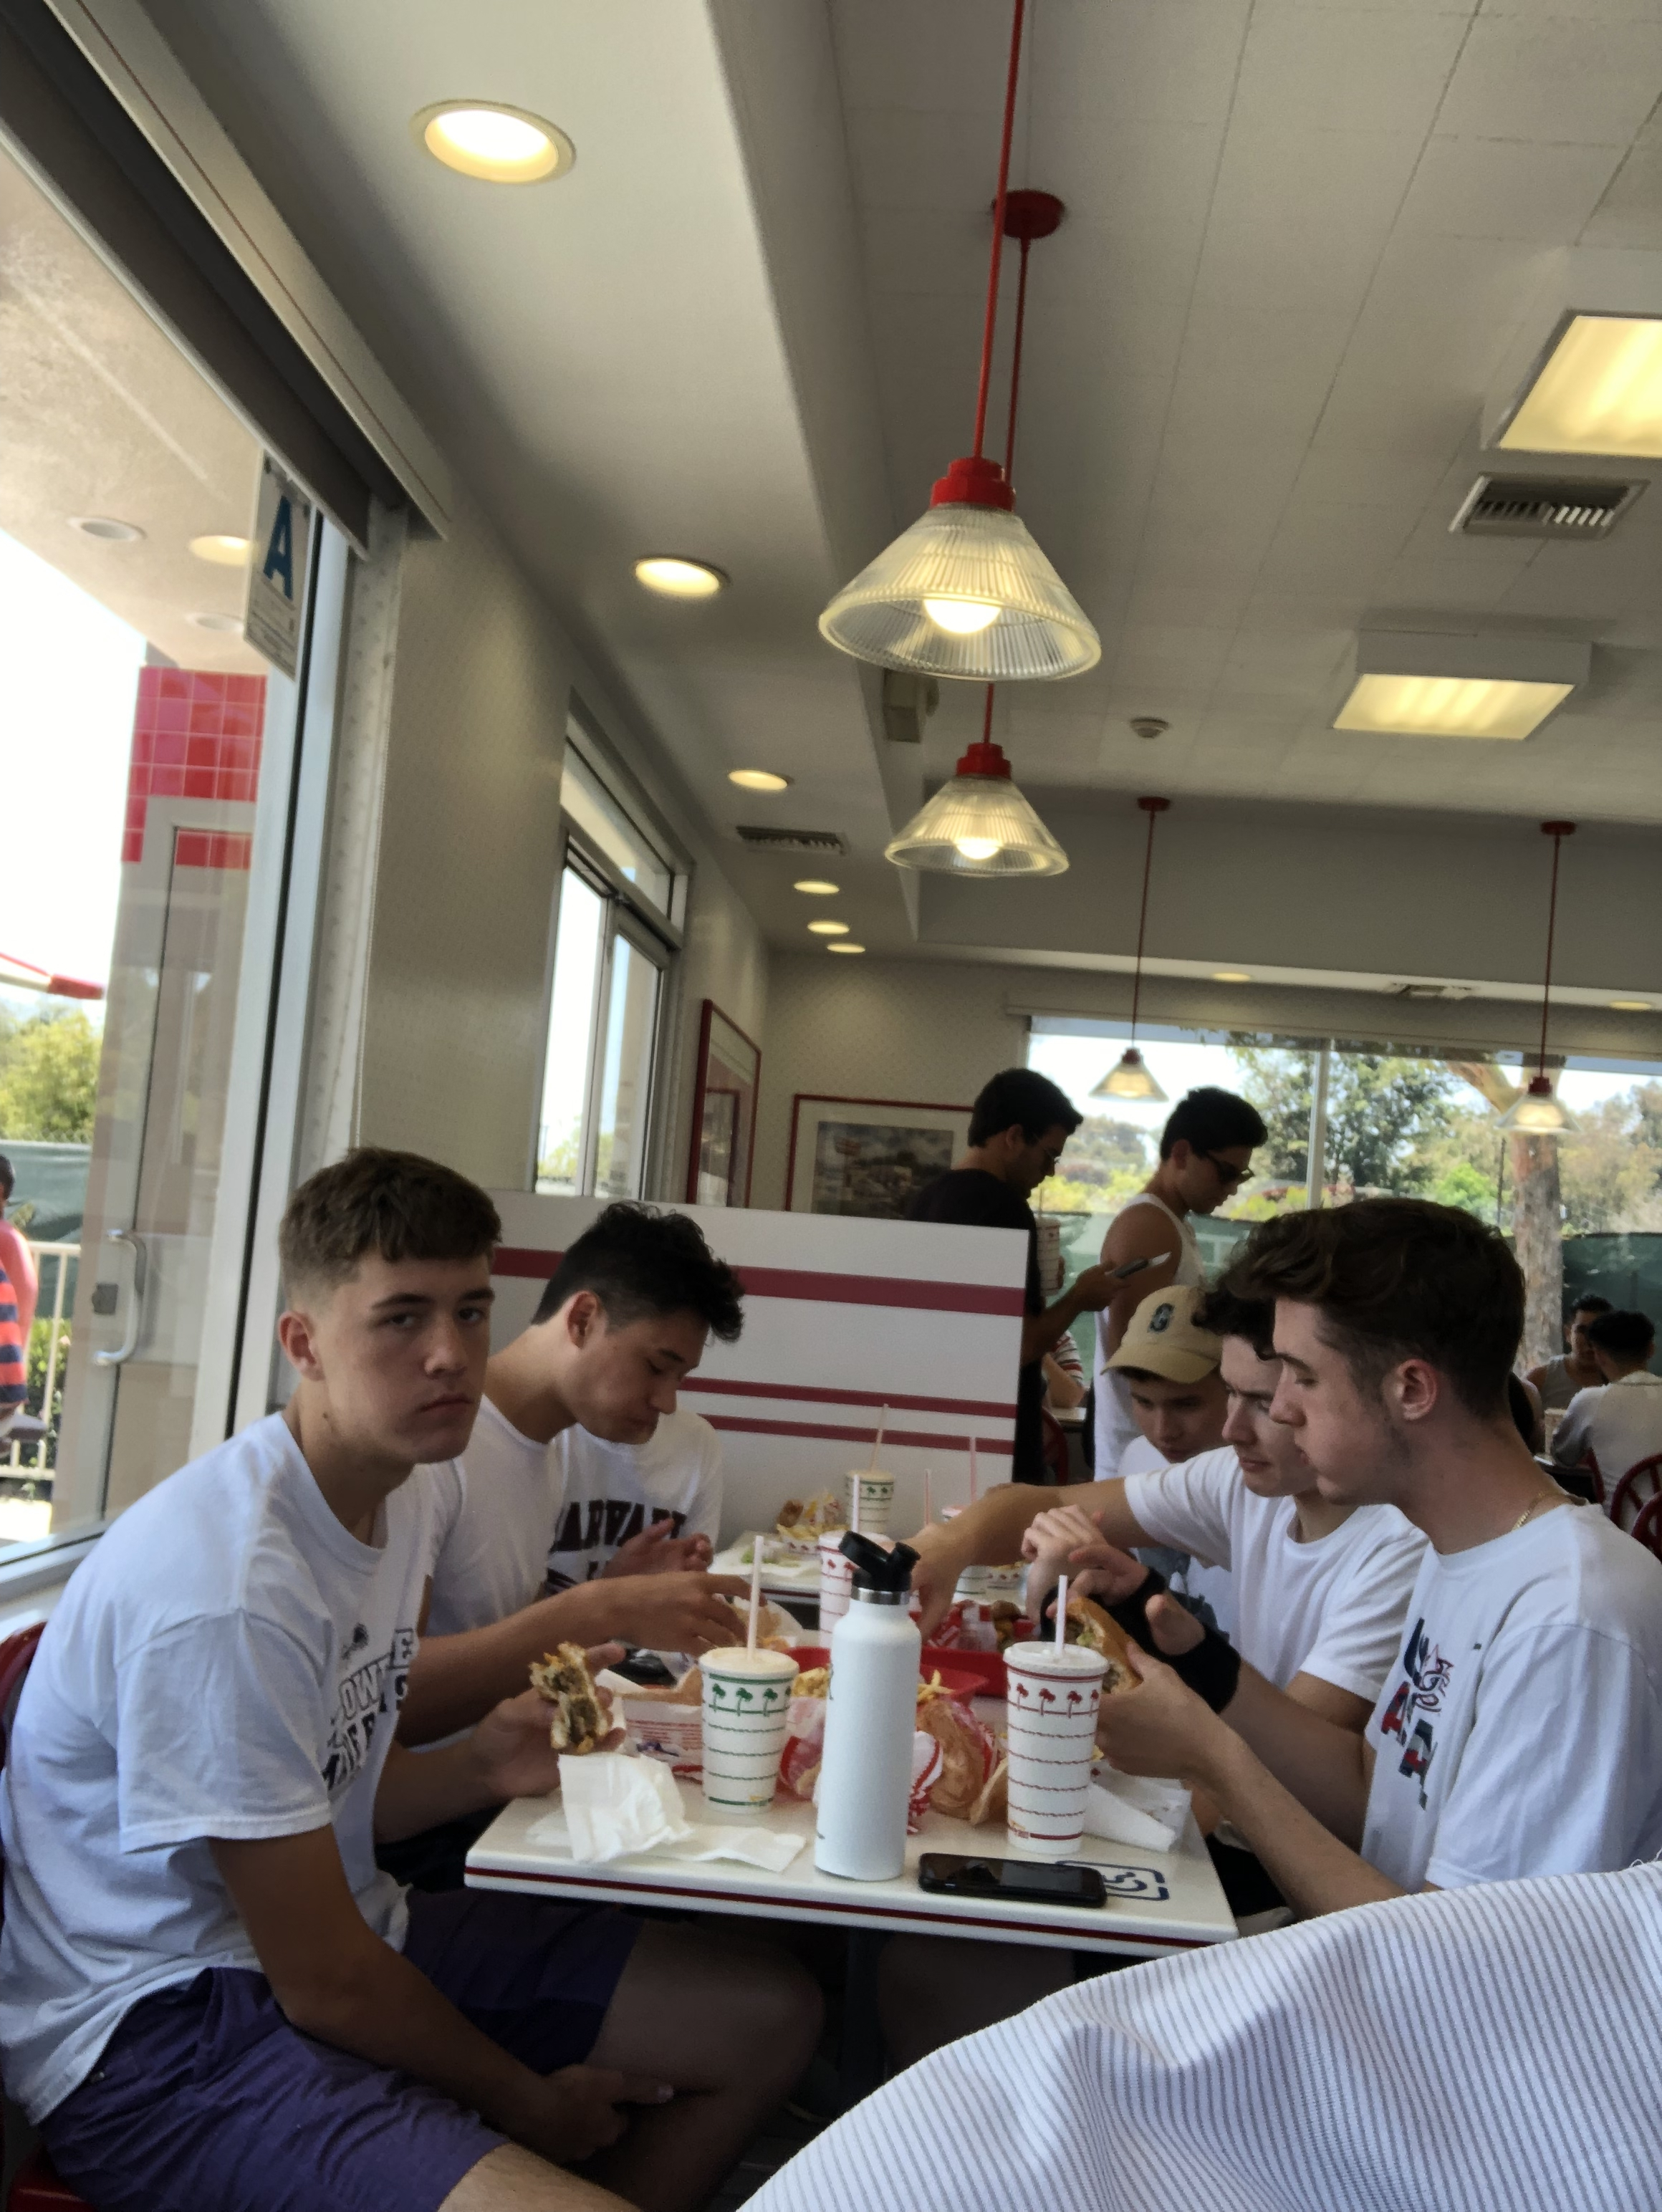 FRI: First meal of the trip @ In-N-Out